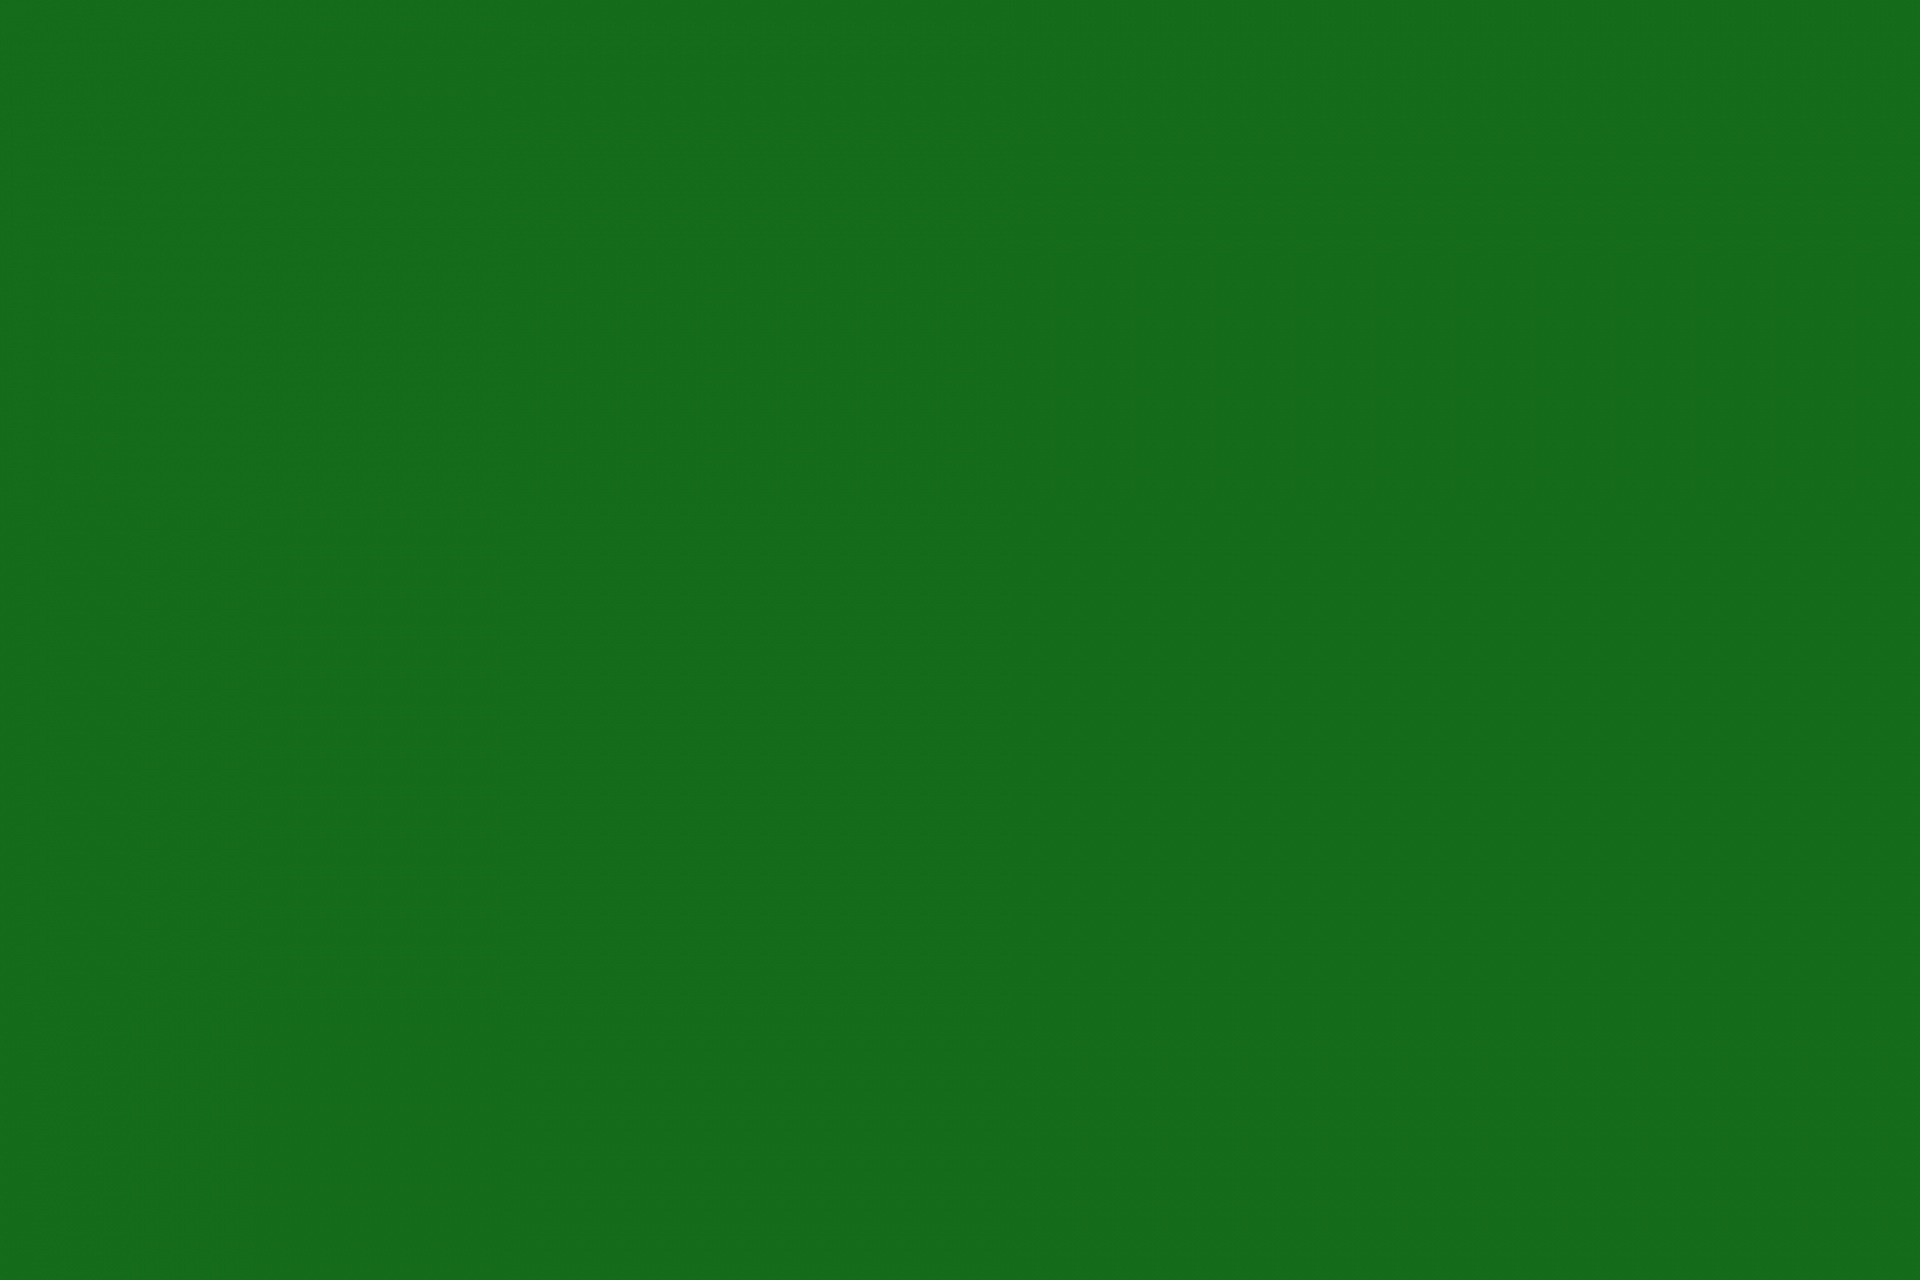 1920x1280 Bright Green Monocolor Background